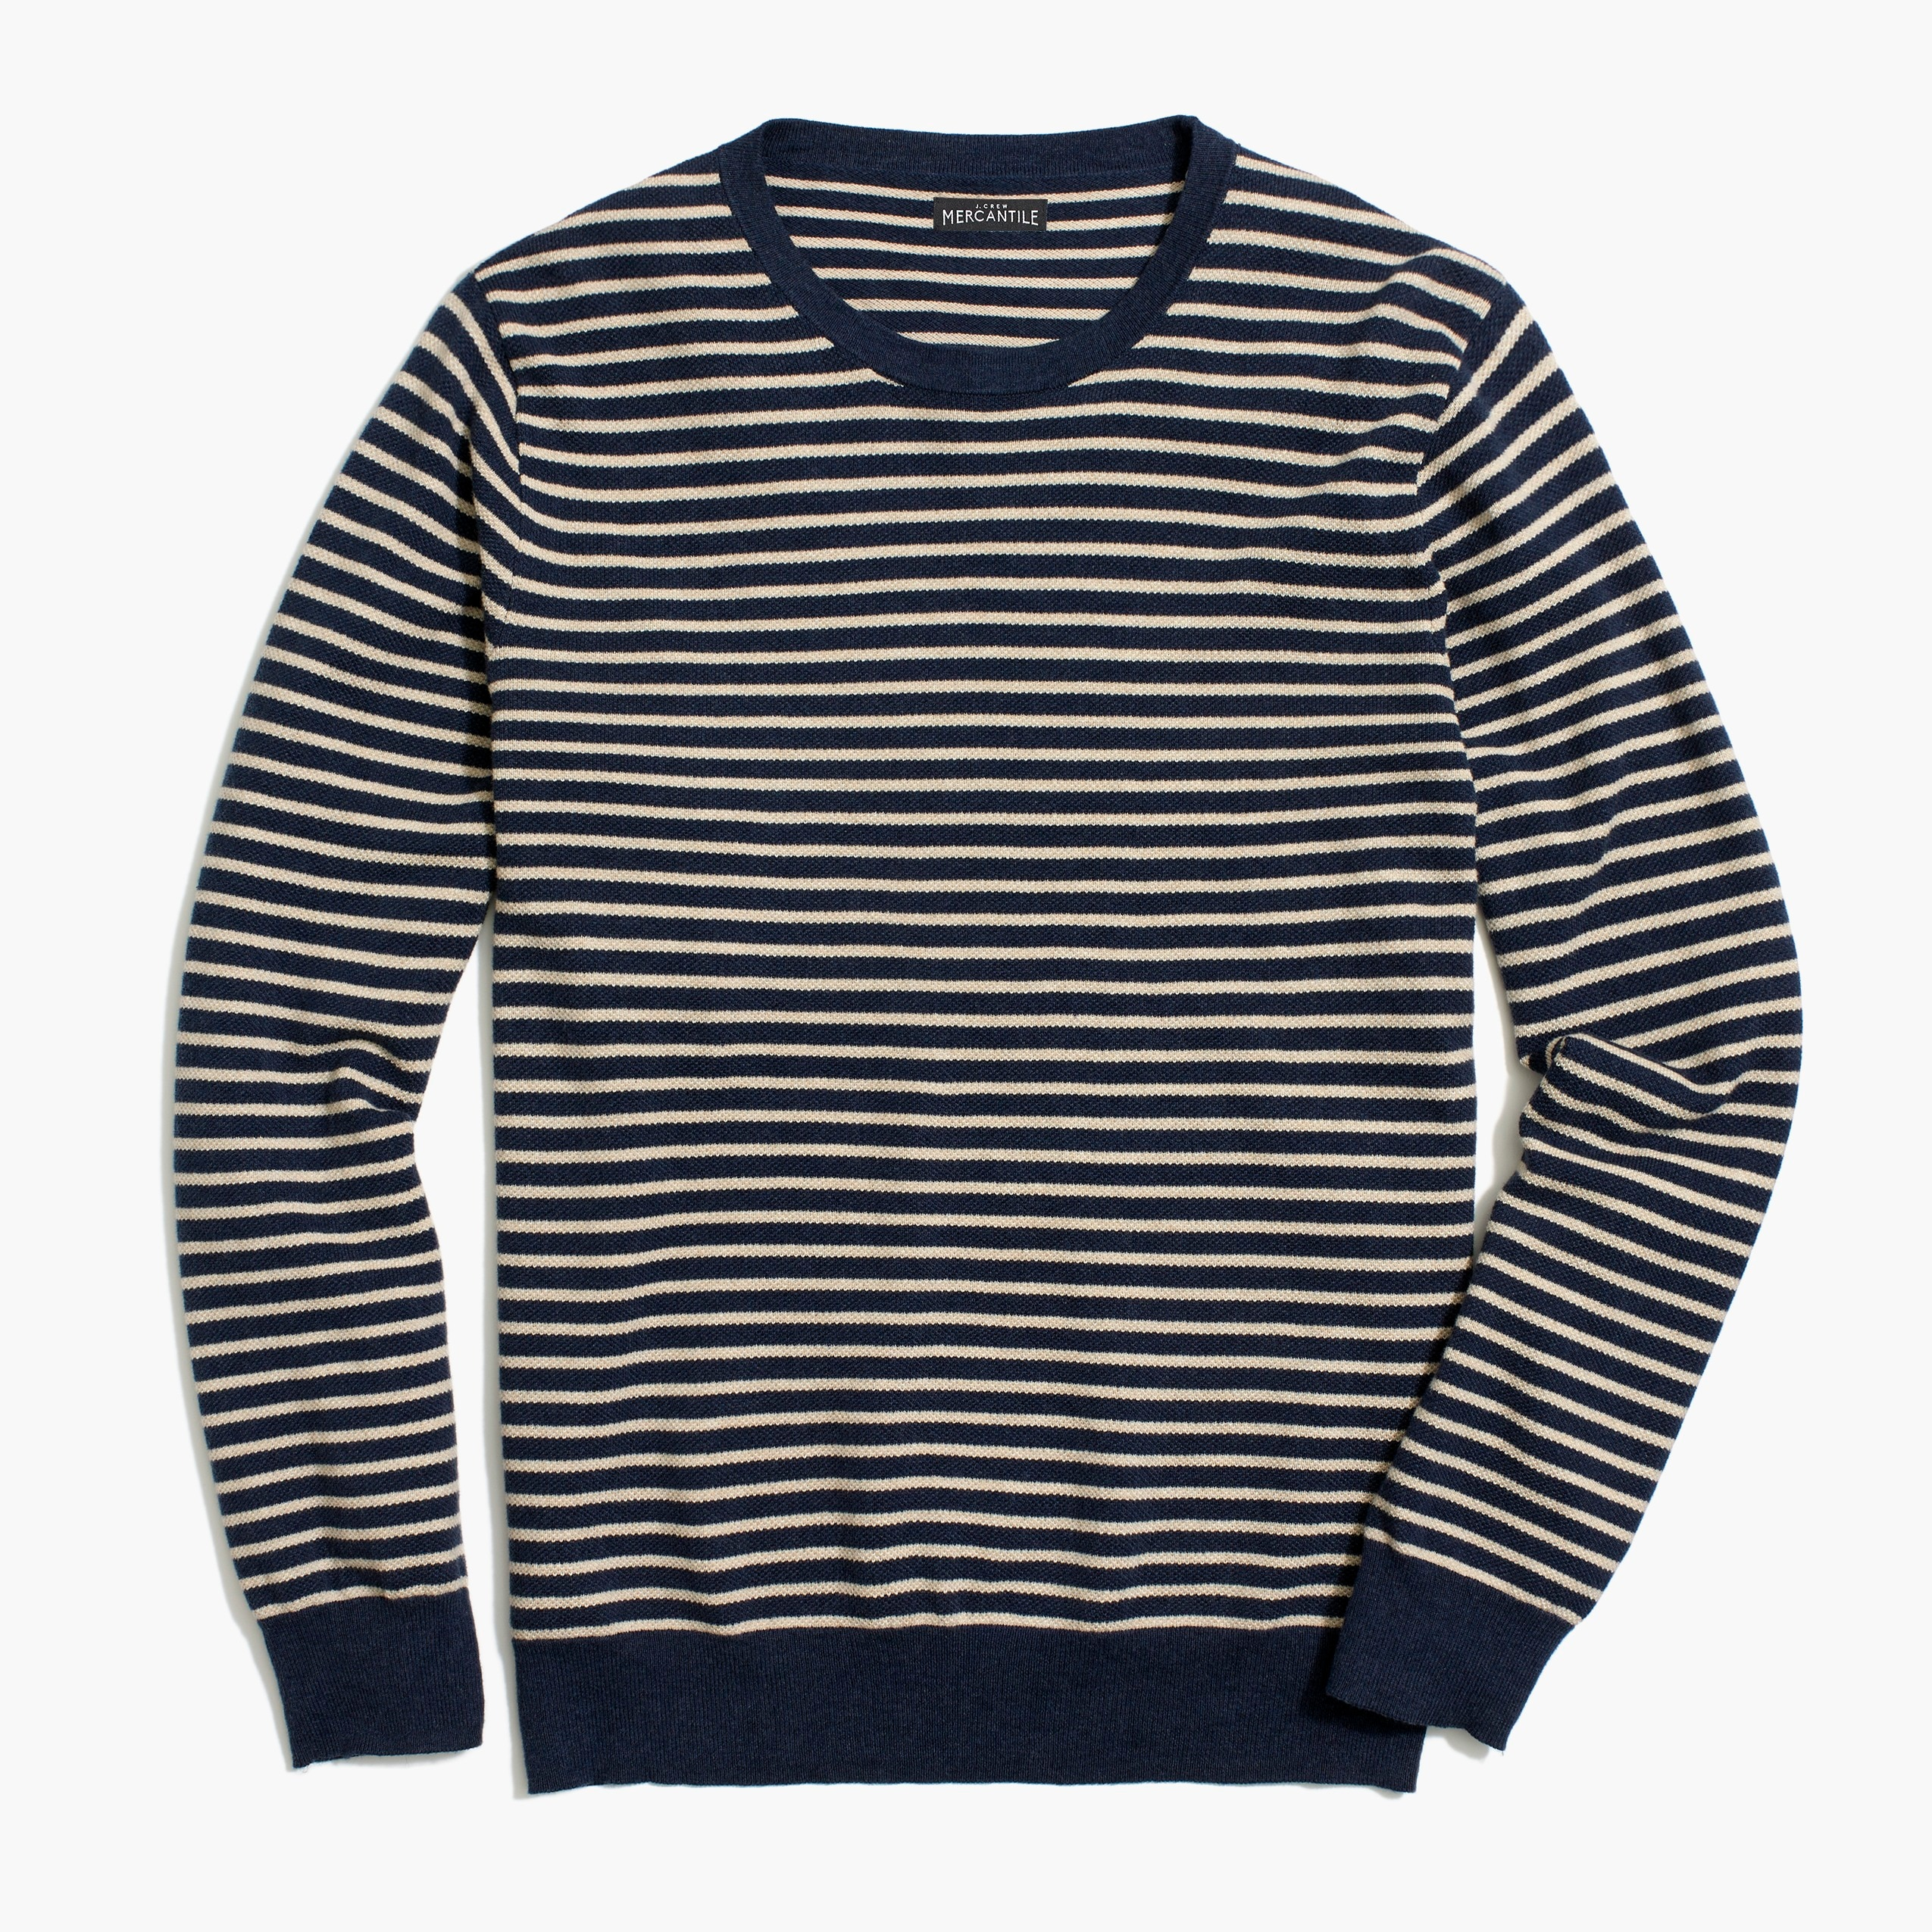 Image 2 for Slim-fit cotton piqué crewneck sweater in stripe